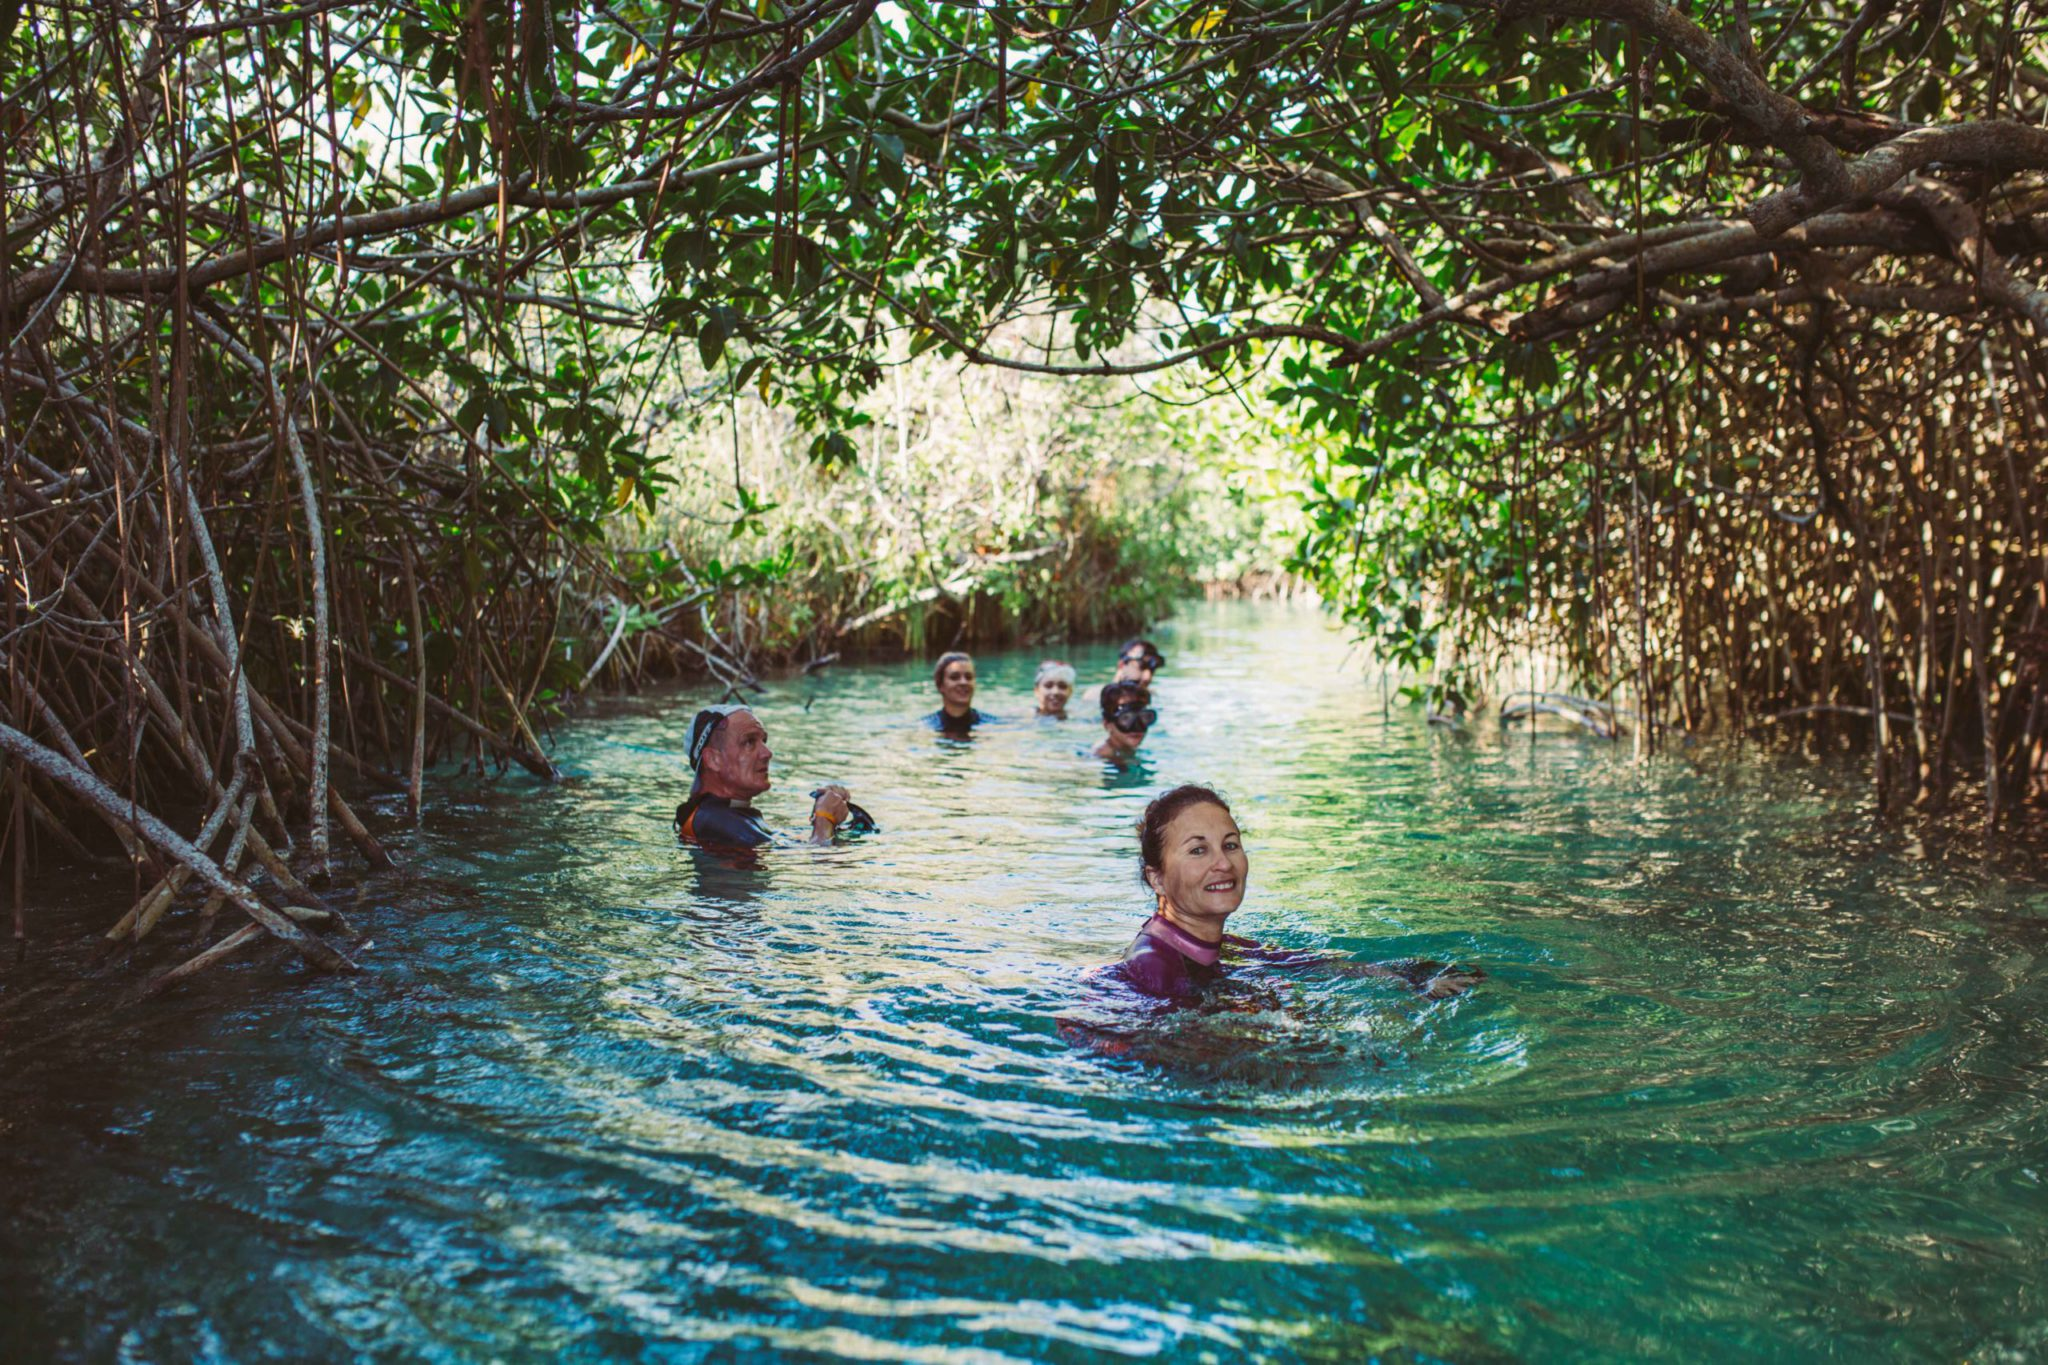 Sian Kaan Muyil Lazy river and walk Adventure in Mexico